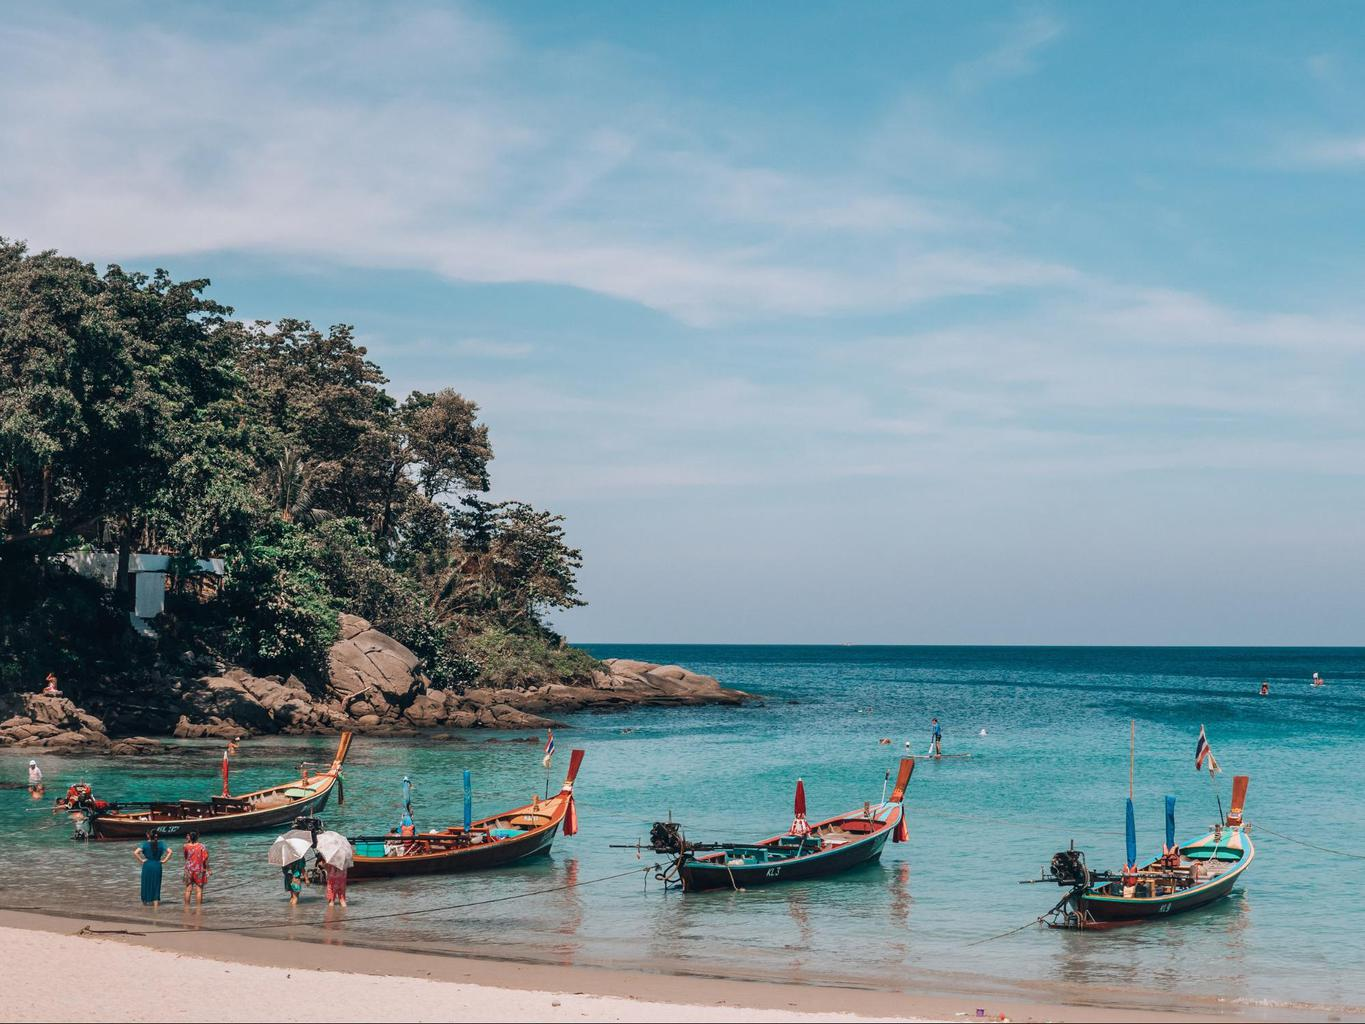 Longtail boats in Kata beach ready to take you to an island